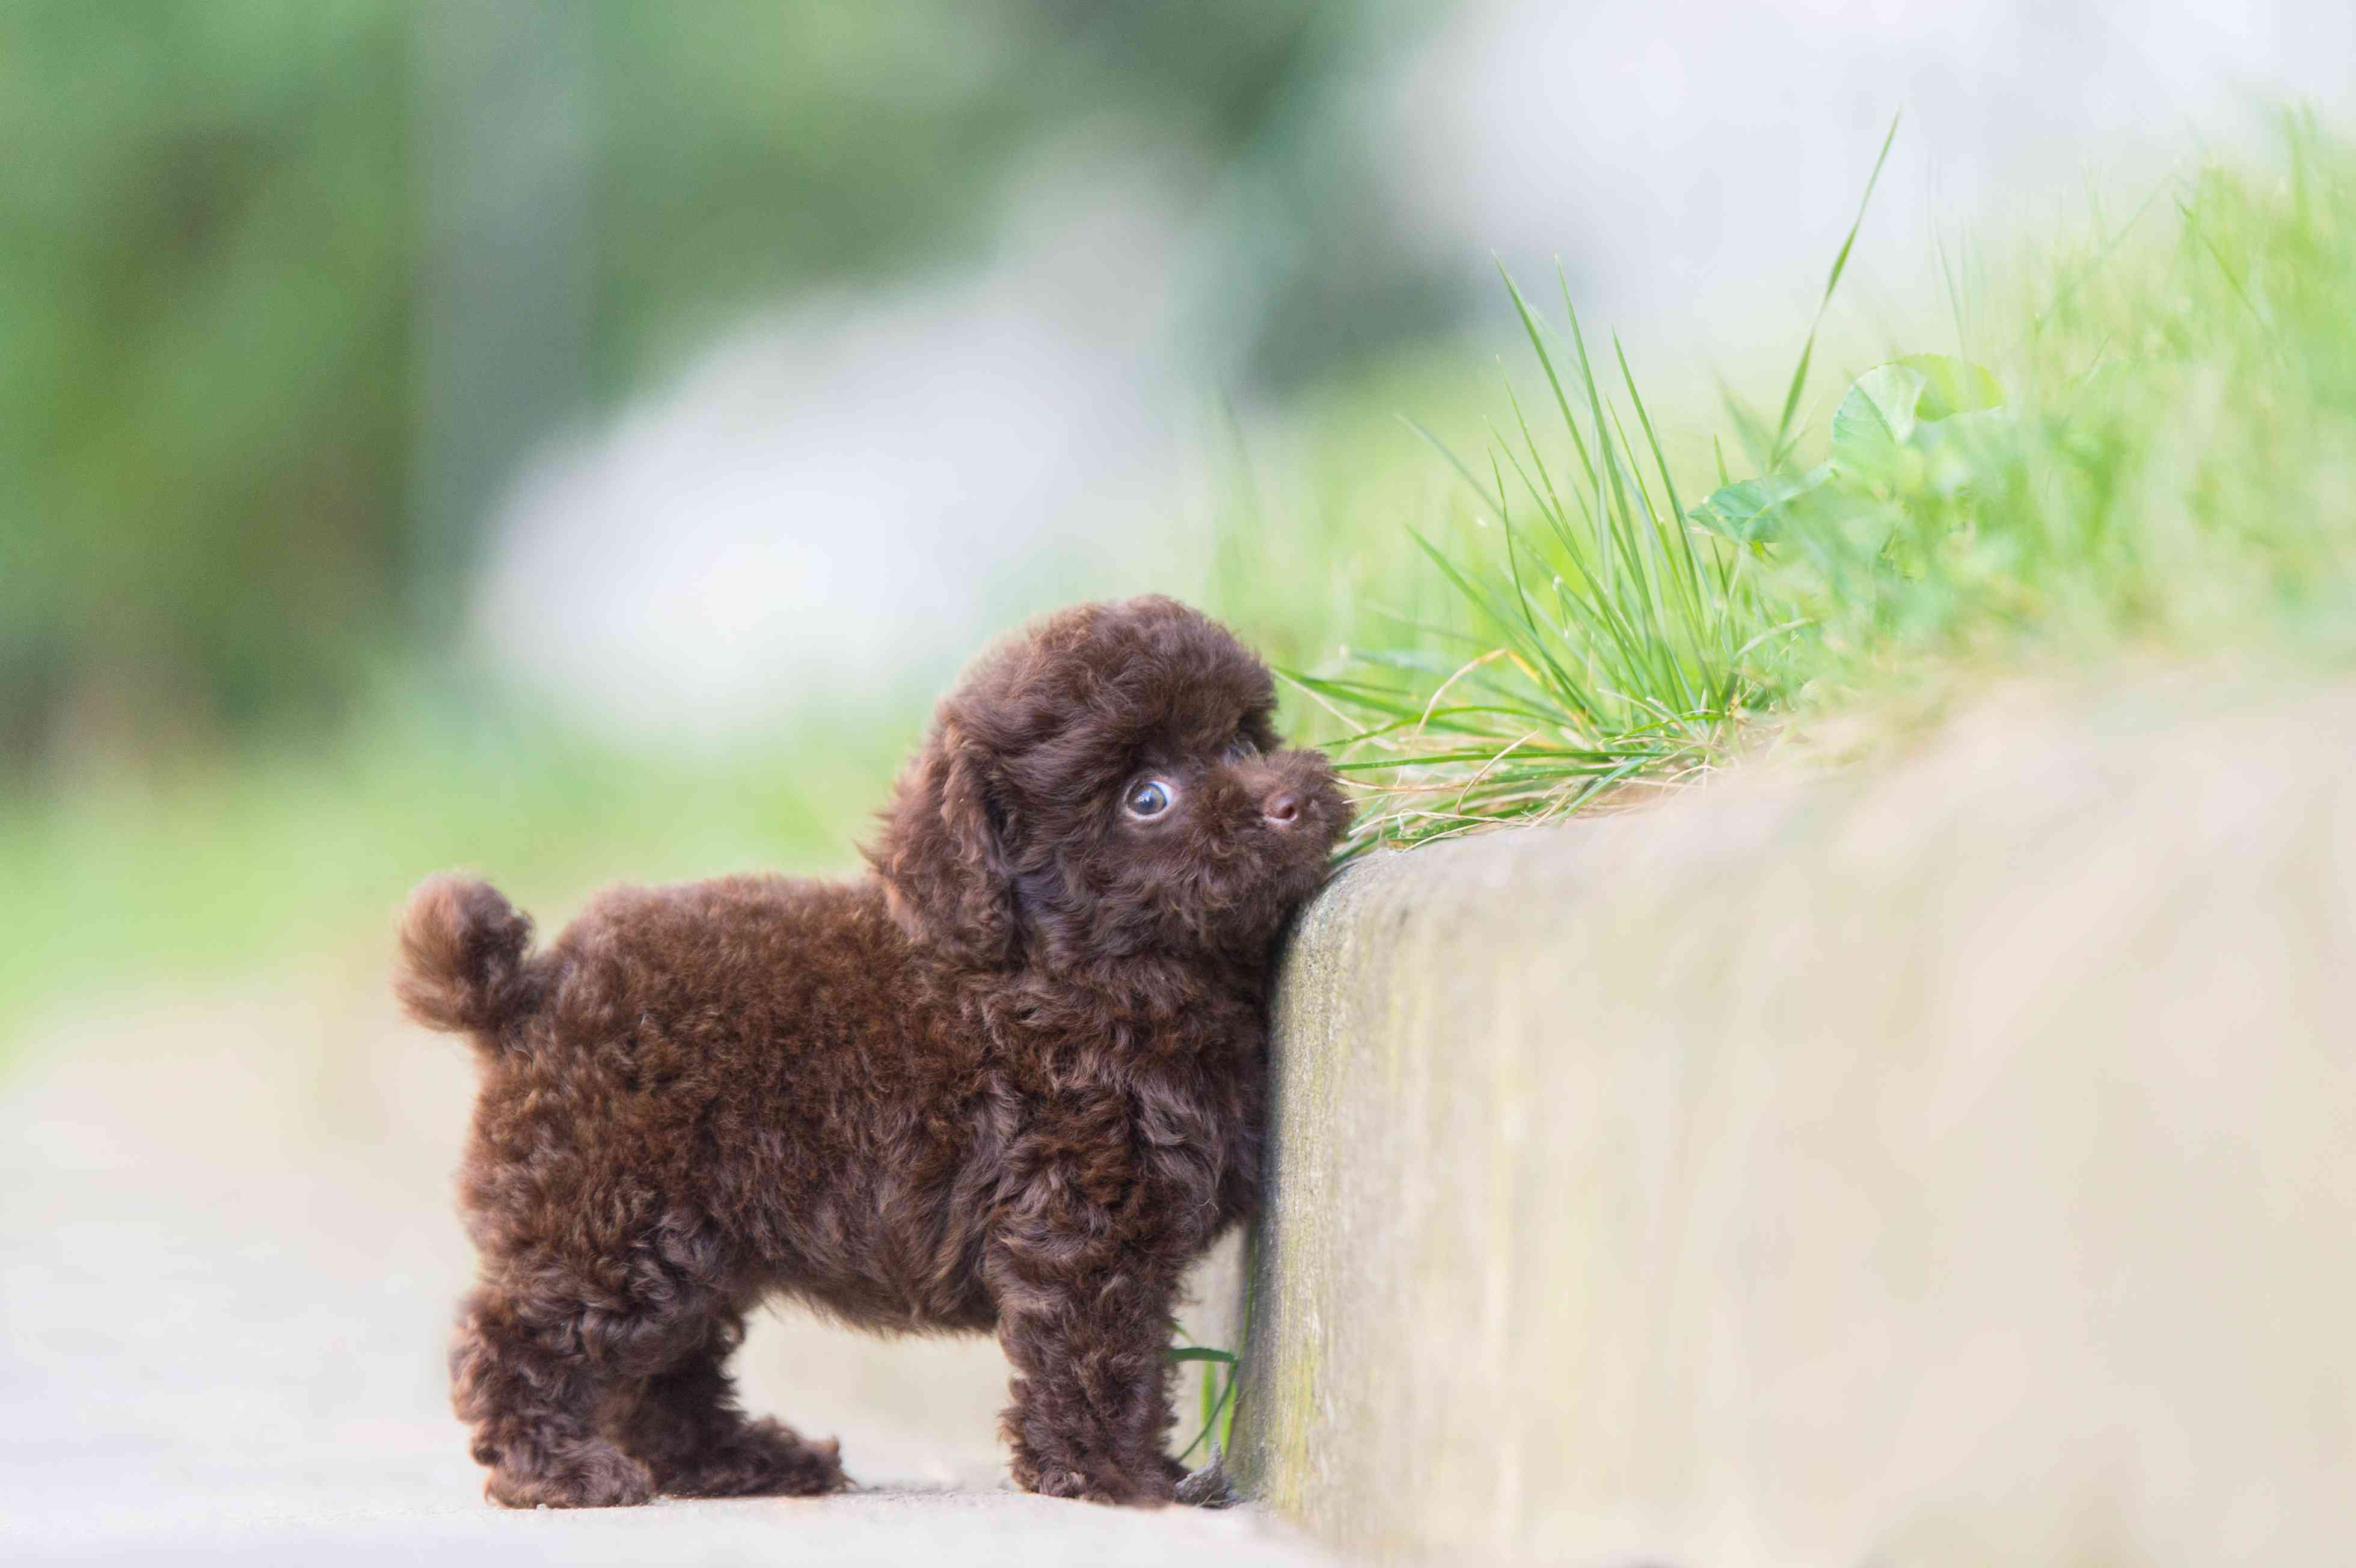 A tiny dark brown Toy Poodle puppy next to a curb.